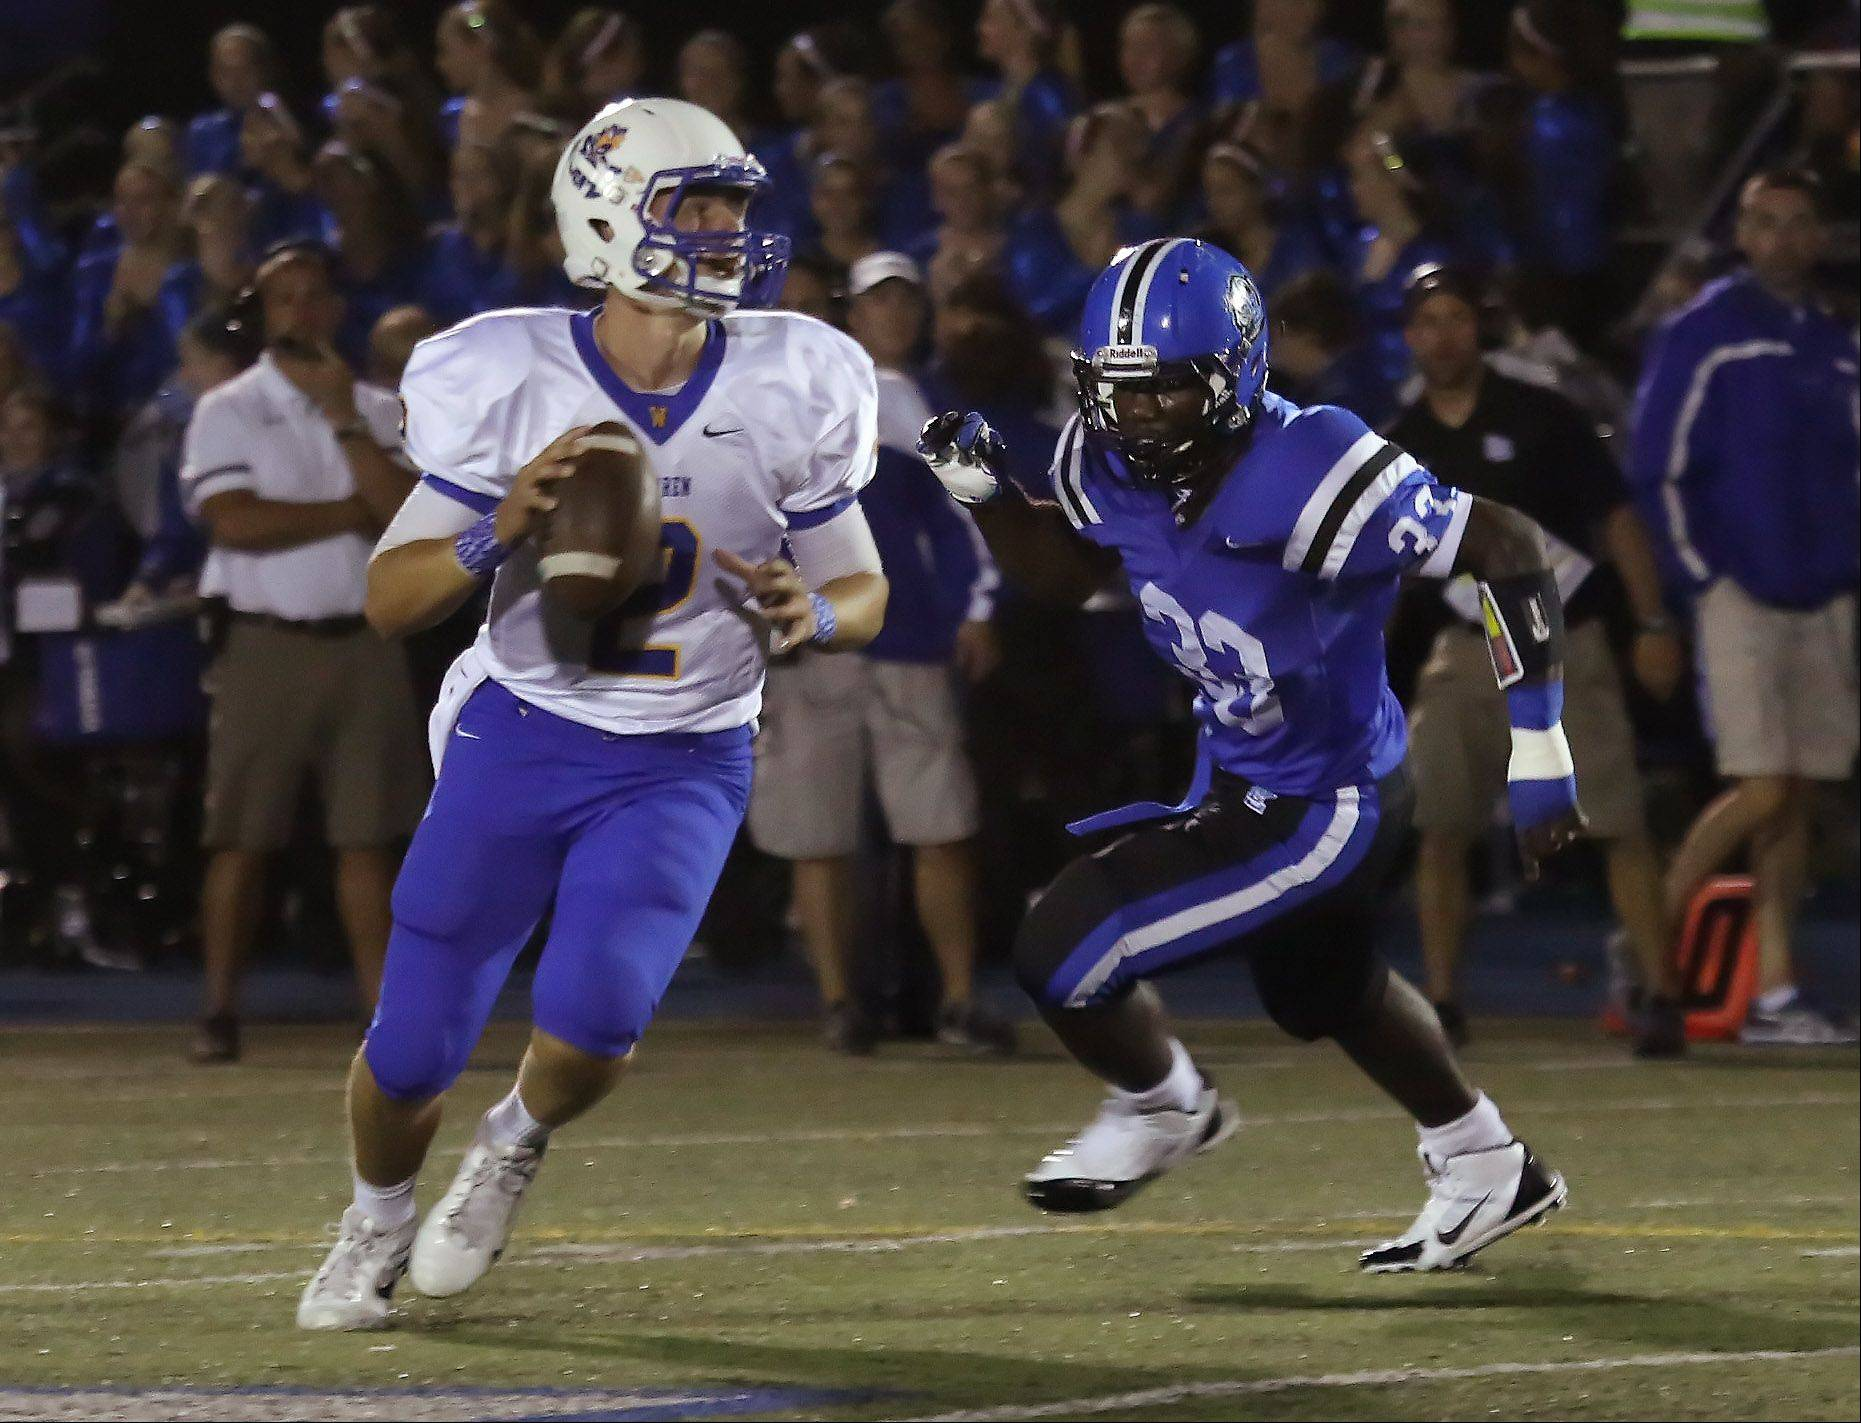 Warren quarterback Andrew Nickell is chased by Lake Zurich defensive lineman Dominic McNeil on Thursday at Lake Zurich.